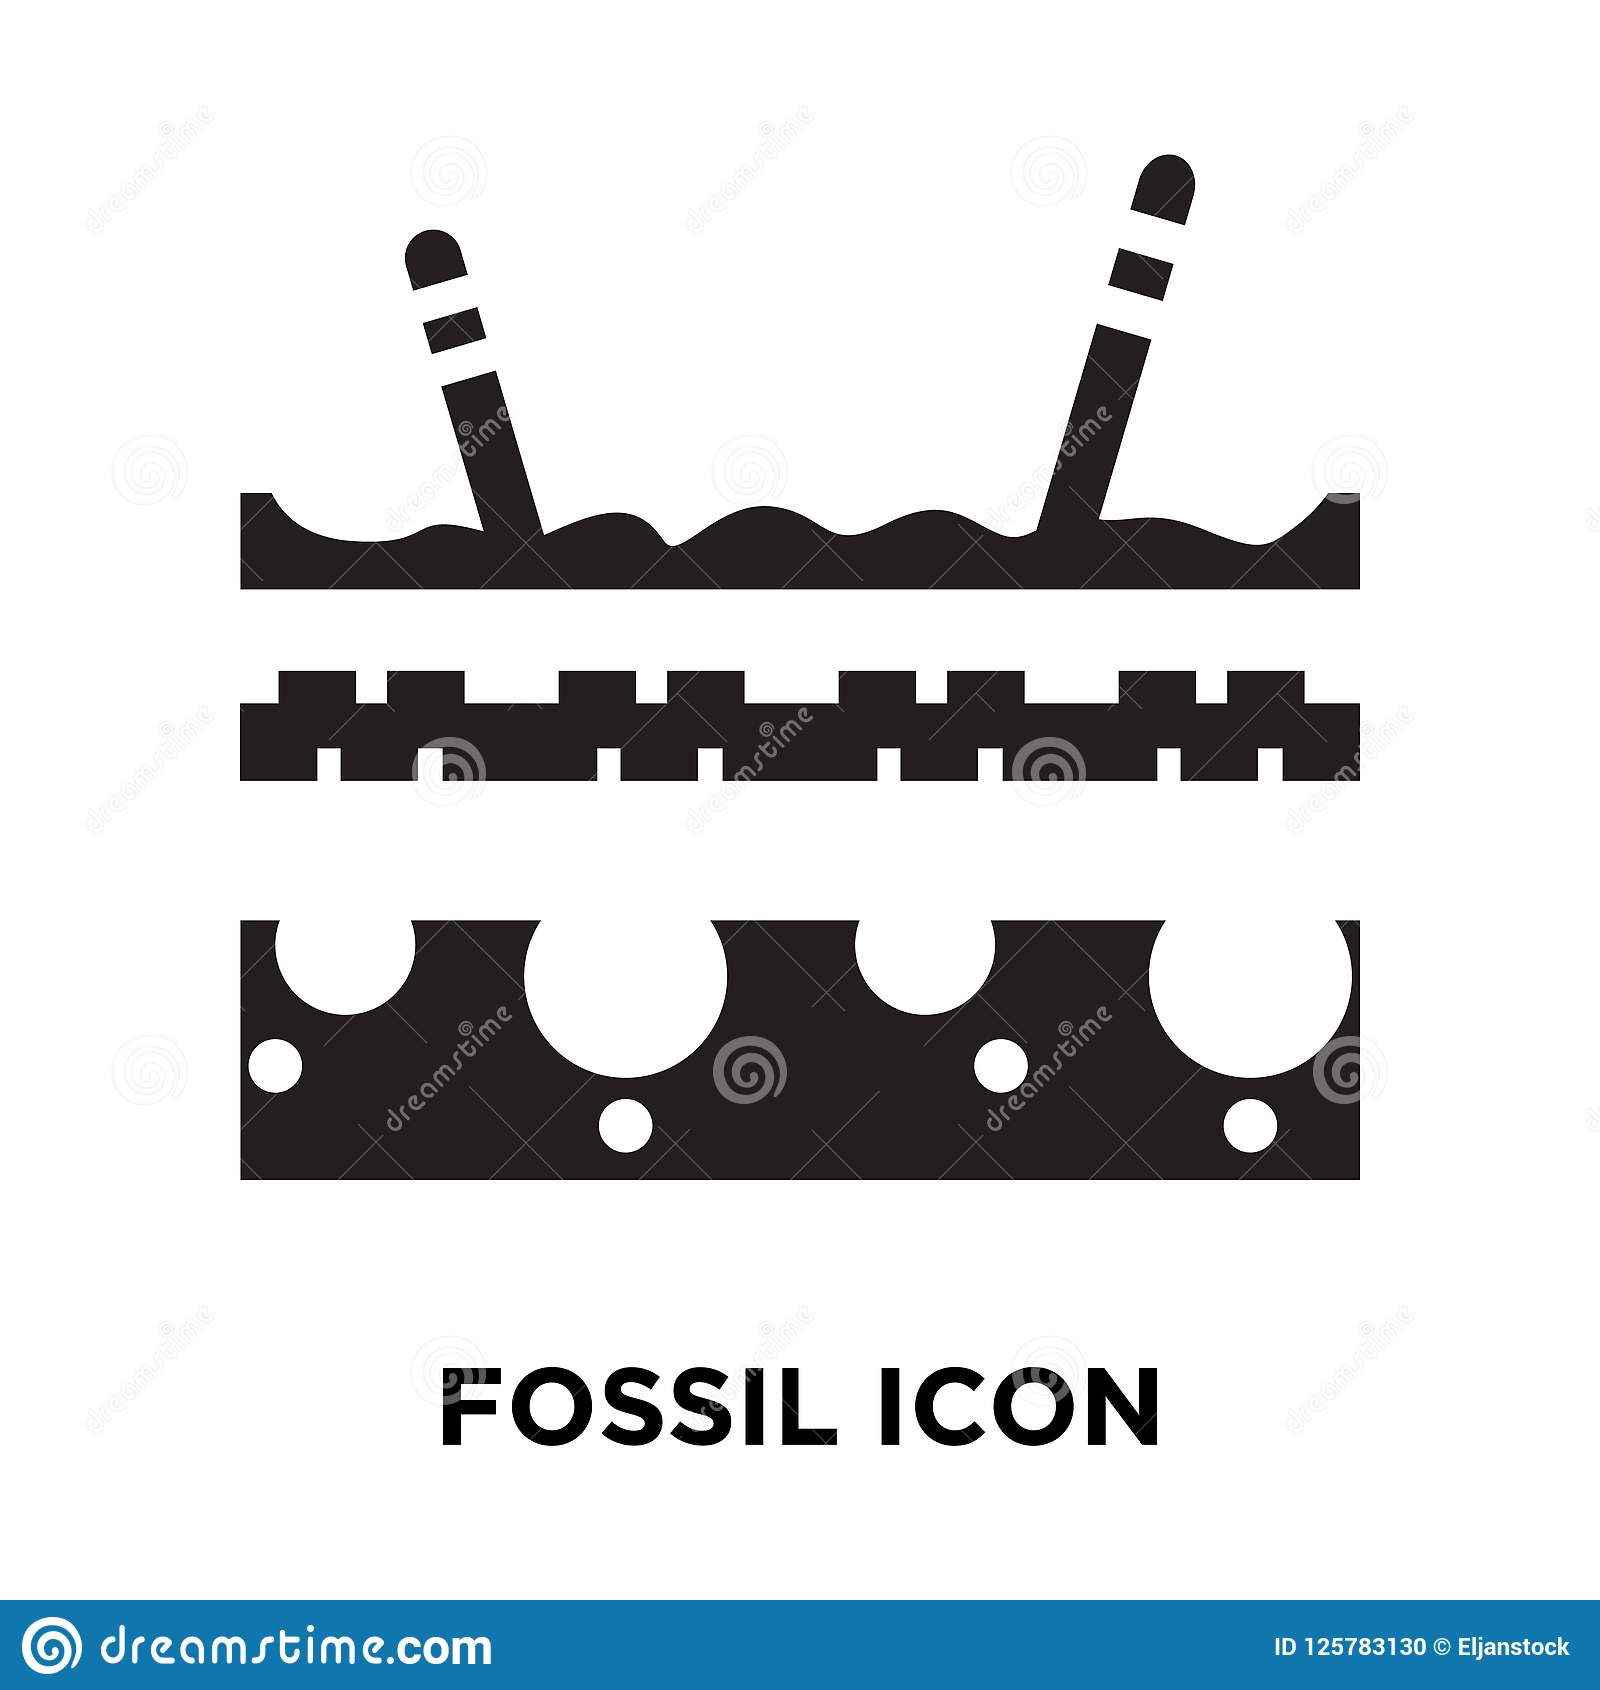 Fossil icon vector isolated on white background, logo concept of